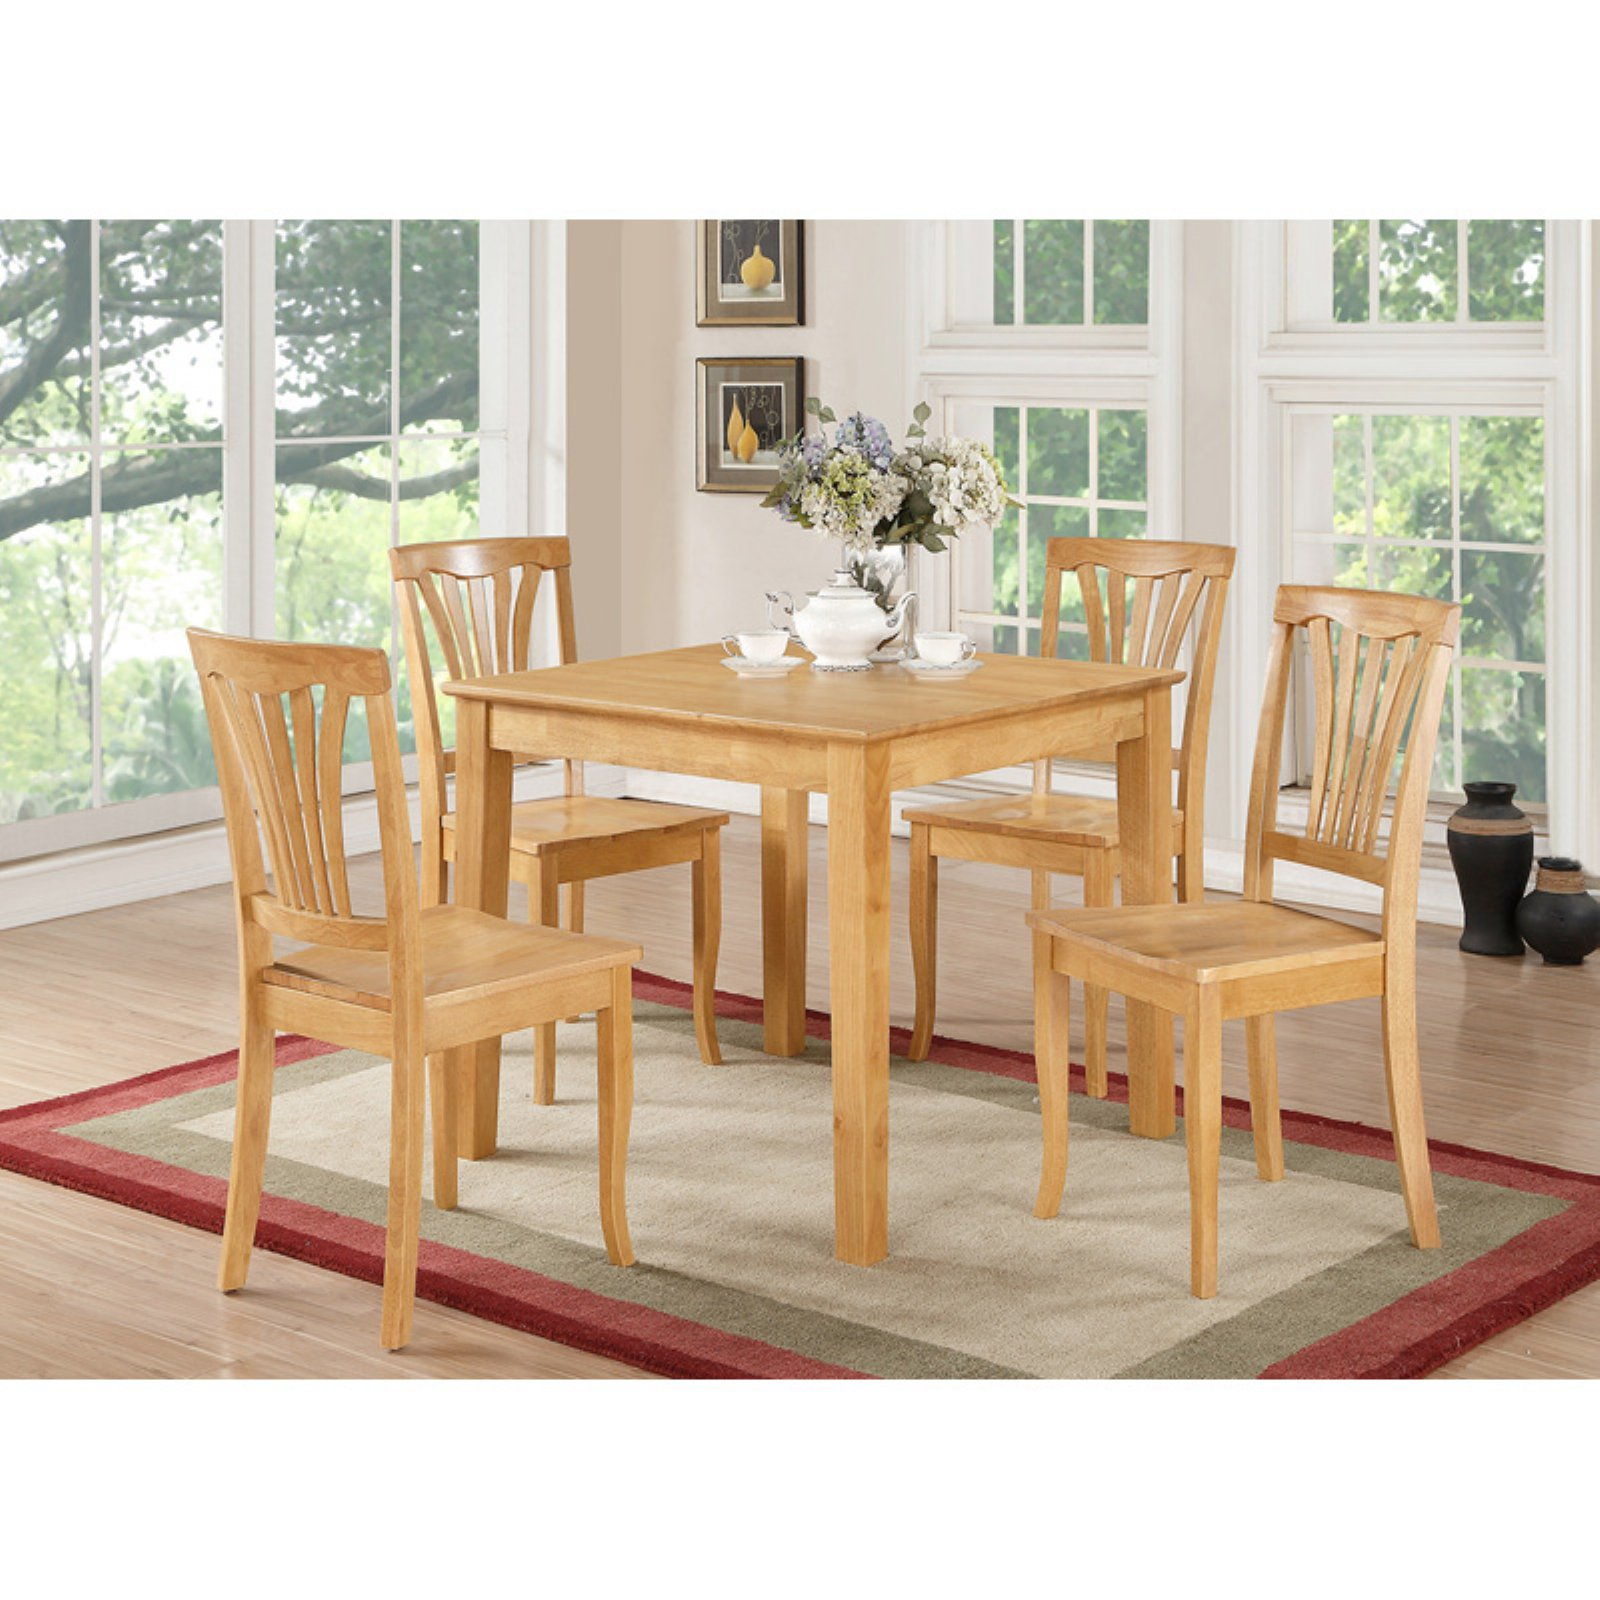 East West Furniture 5 Piece Lath Back Breakfast Nook Dining Table Set